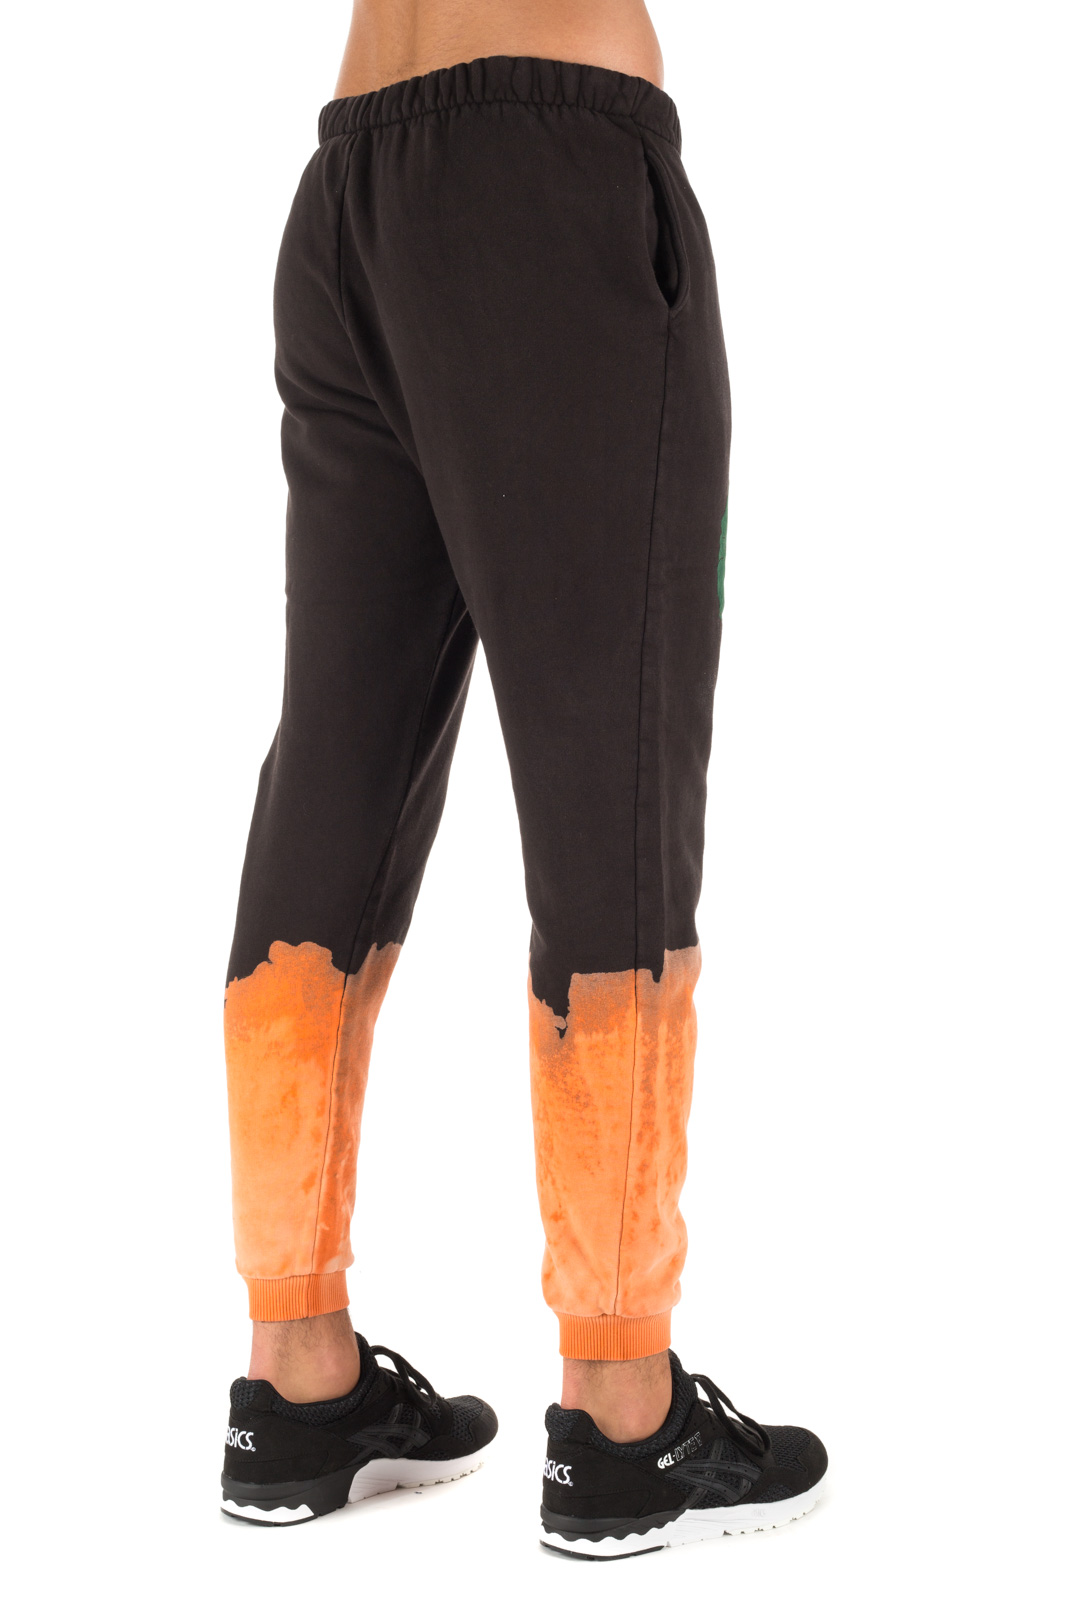 Paura - Irene Fleece Pant